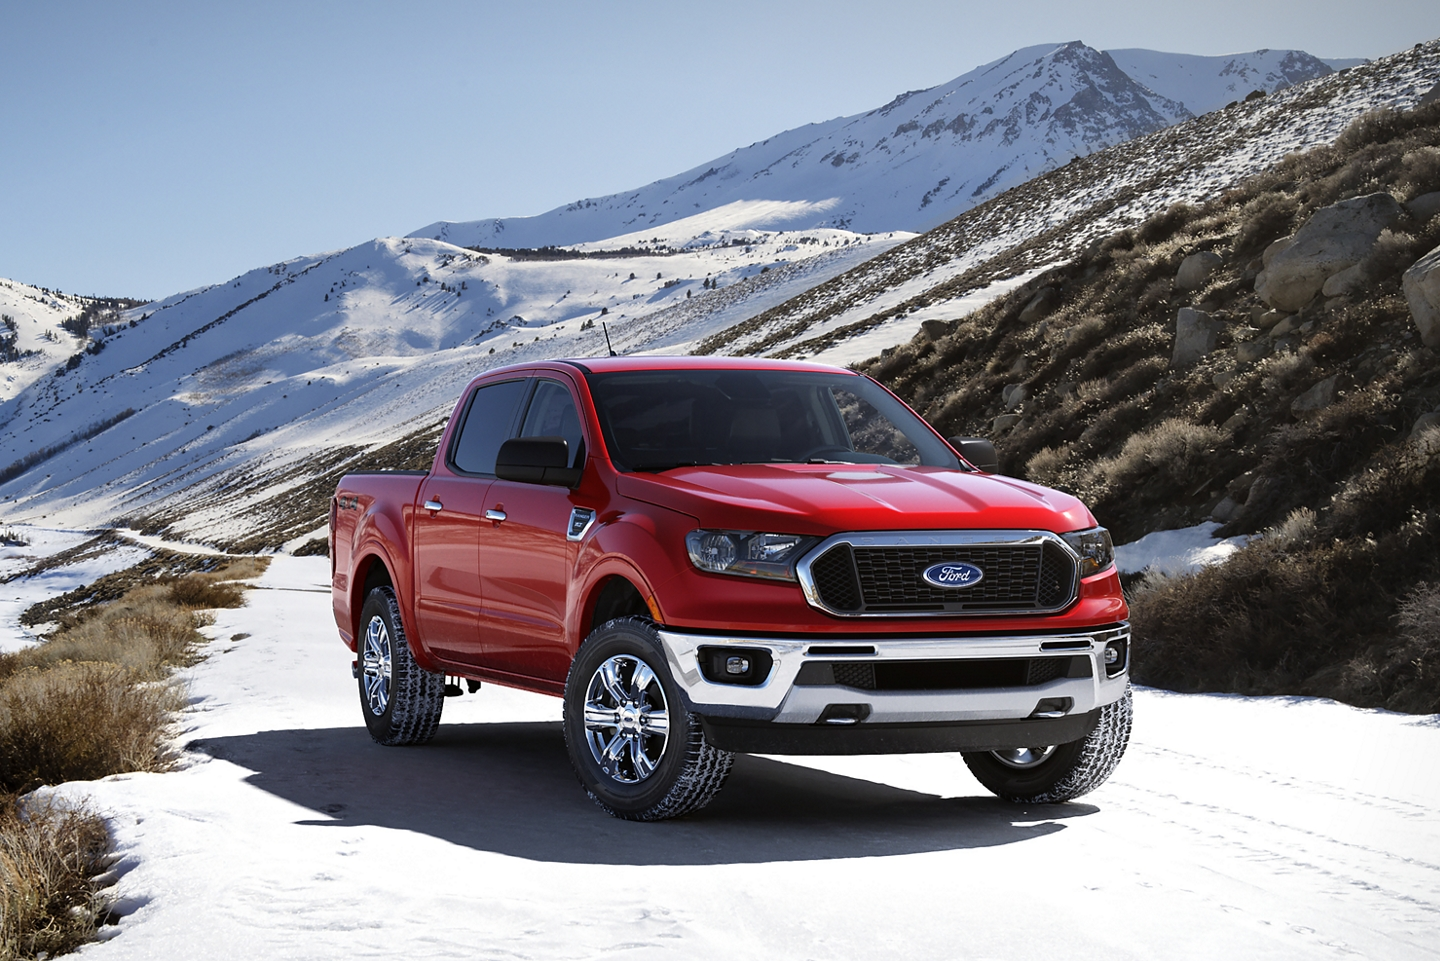 """Report: The Ford Ranger is the Most """"Made in America"""" Vehicle - Autoversed"""